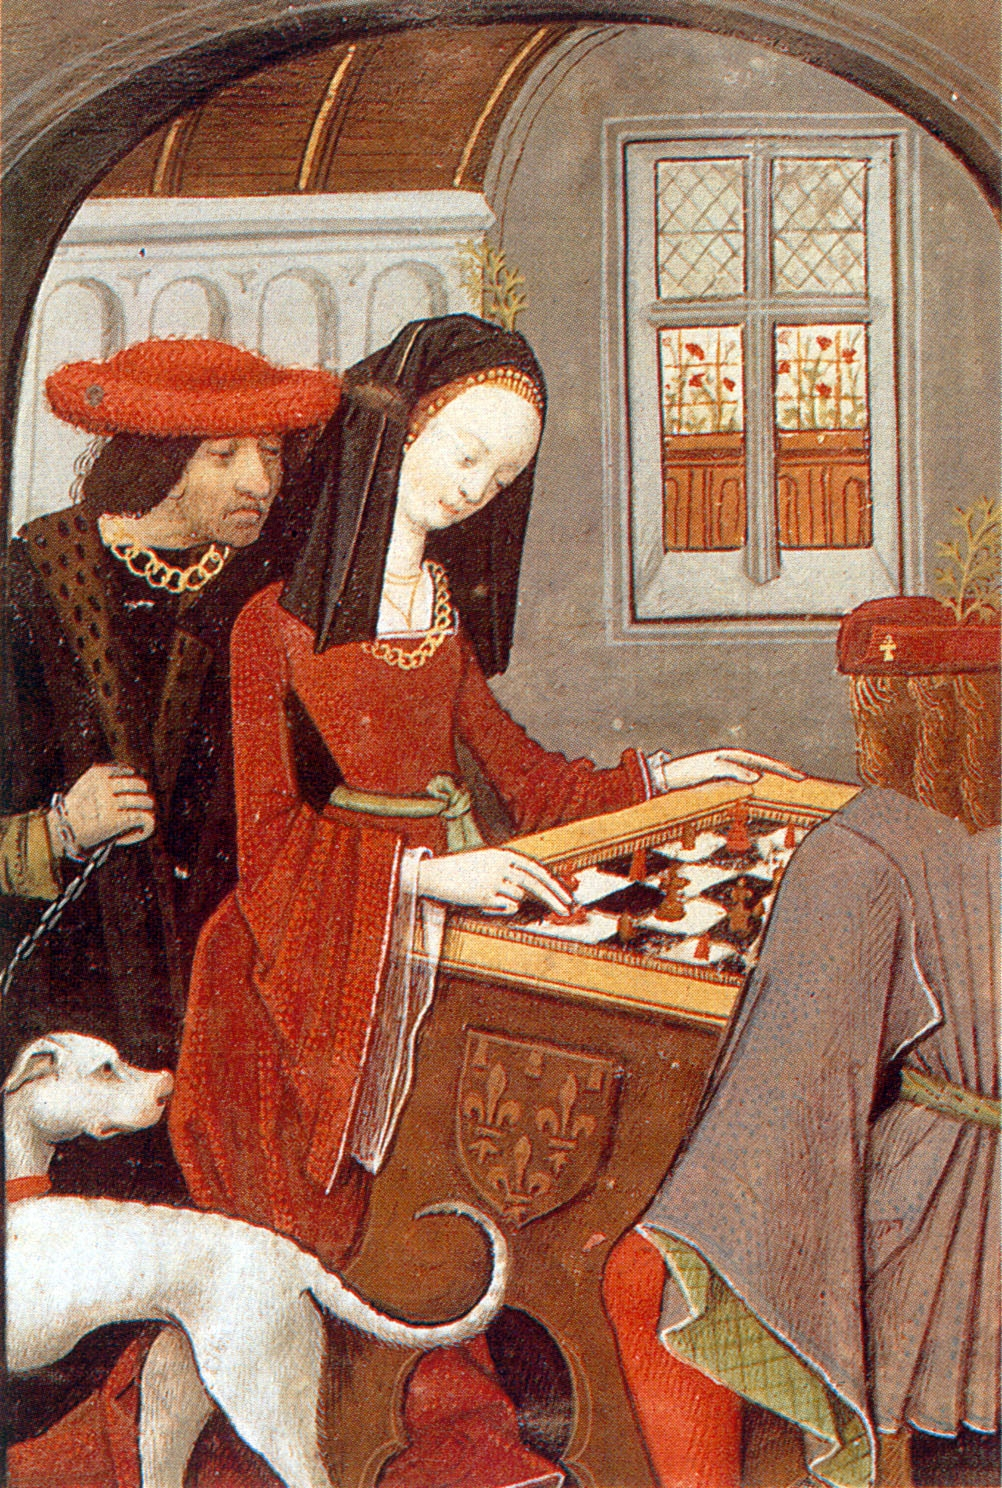 1500 (approx) - from Book of Chess Lovers